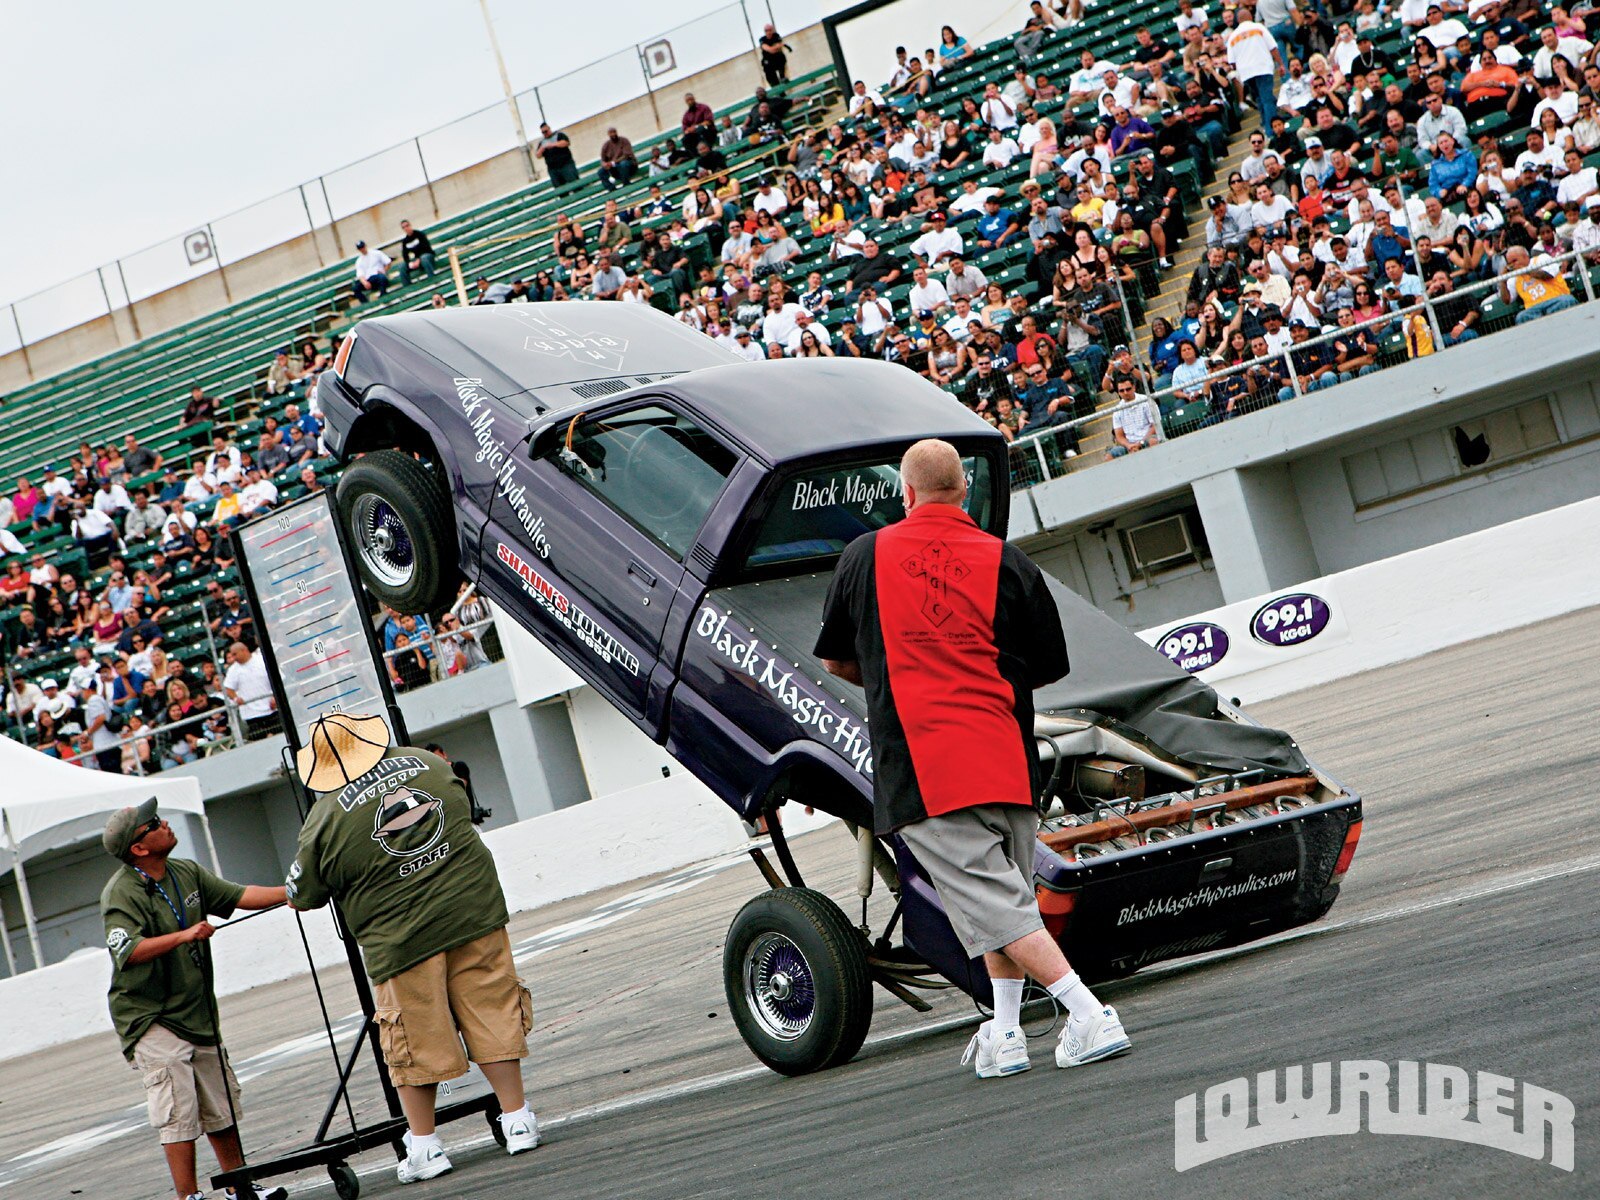 lrmp_0911_01-2009_lowrider_san_bernardino_hop-black_magic_truck3